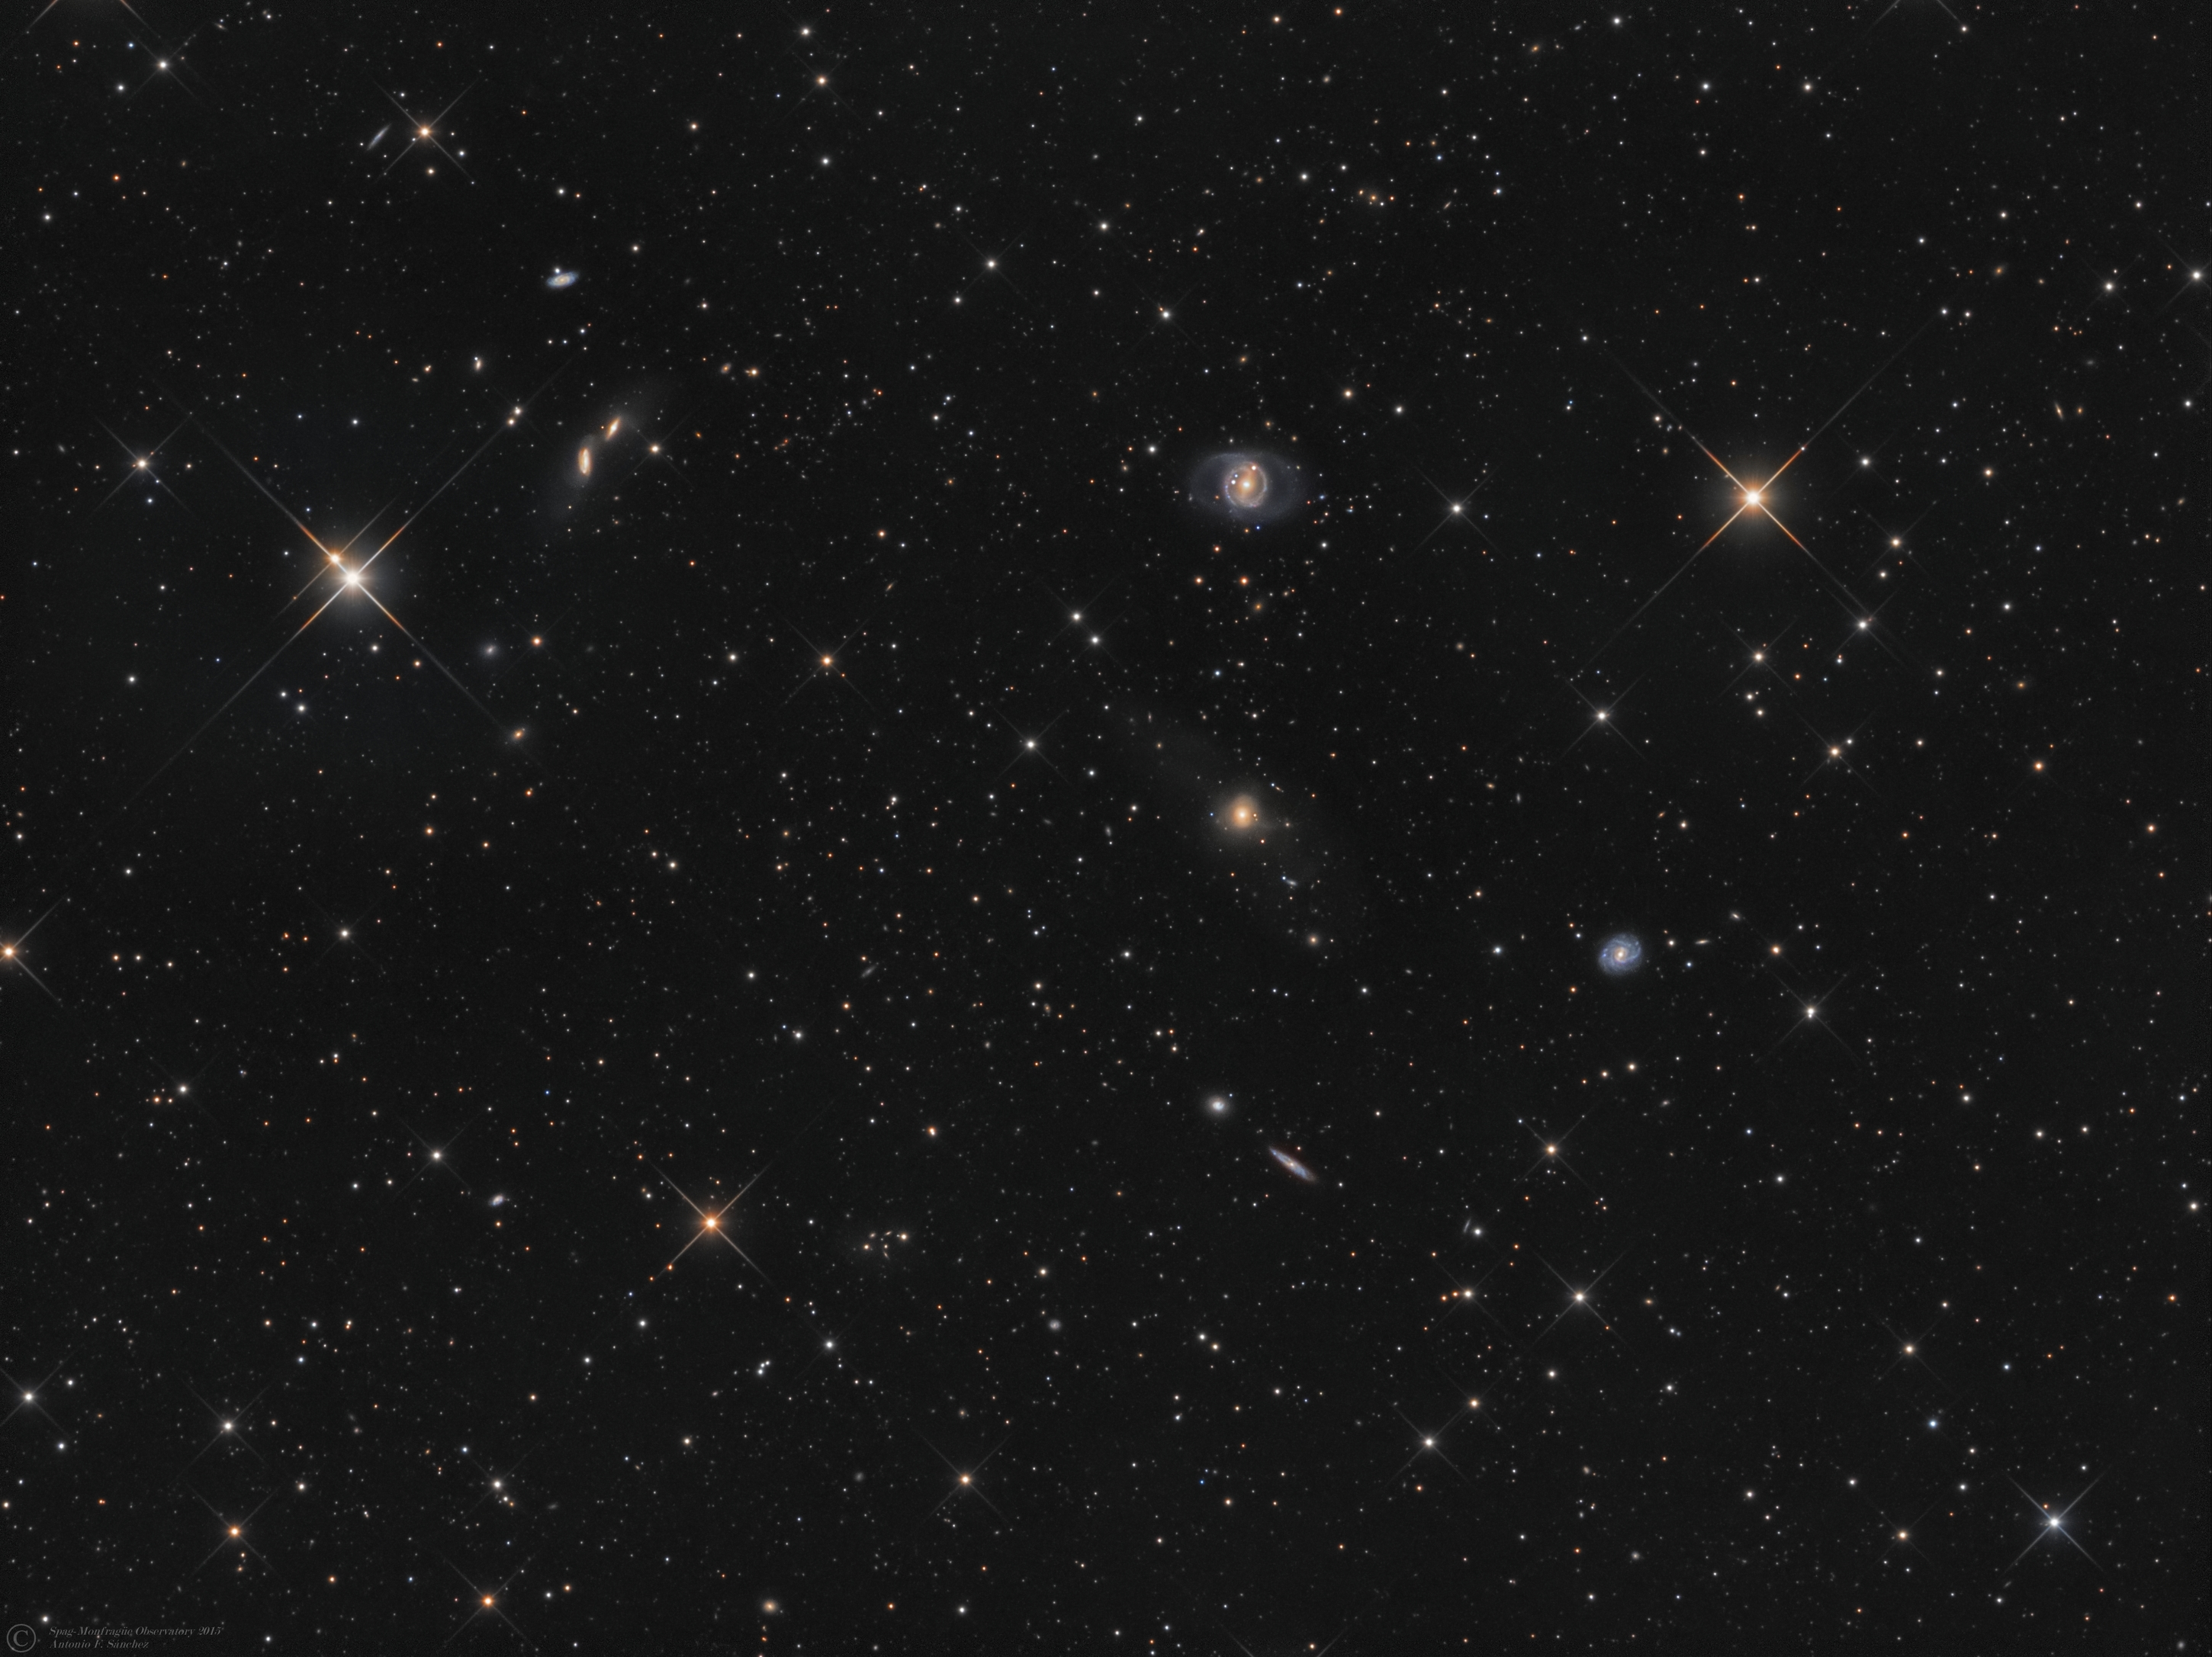 "NGC 5934,5935,5943,5945,5947 (Bootes).jpg - NGC 5934-5935,5943,5945,5947 (Bootes) * May 2015* ASA N12 astrograph (f/3.6, 1078mm) * DDM85 mount * FLI ML8300 *LRGB Optec filter set * L:720m R:240m G200m B:270m * Unguided *NGC 5945, along with the other galaxies in the image, are located in the constellation Boötes. NGC 5945 is an example of a barred galaxy,.spiral whose arms overlap making a pseudo ring. Besides these rings there are two outer arm segments that see to make huge ""ears"" on the east and west sides of the galaxy.  The two arms appear to have a high concentration of hot young blue stars. Just above the rings is a blue area, of possibly similar stars, that appear to have become slightly disconnected from the galaxy. To the far left, of NGC 5945, is a pair of interacting galaxies,NGC 5934 and 5935.Both have plumes drawn out of them by the interaction. Below the pair is KISSR 1955 a starburst galaxy with a faint outer halo. Starburst activity can be triggered by interaction with another galaxy but this isn't necessary.At the center of the image is the NGC 5943. This galaxy is very fuzzy with large plumes Closer examination reveals a jet coming from the right side of the galaxy. This jet may be related to the large, and faint, cloud that extends to the upper left and lower tight of NGC 5943.NGC 5947 is a rather pretty face on barred spiral with many arm segments.All are likely members of the same local group about a quarter billion light-years distant by redshift measurement. Hundreds of tiny galaxies and galaxy groups are here and there ,in the background,all around the image., some of them 3500 light years and even more...Text Credits: Bob Franke, Rick Johnson,Antonio F.Sánchez"